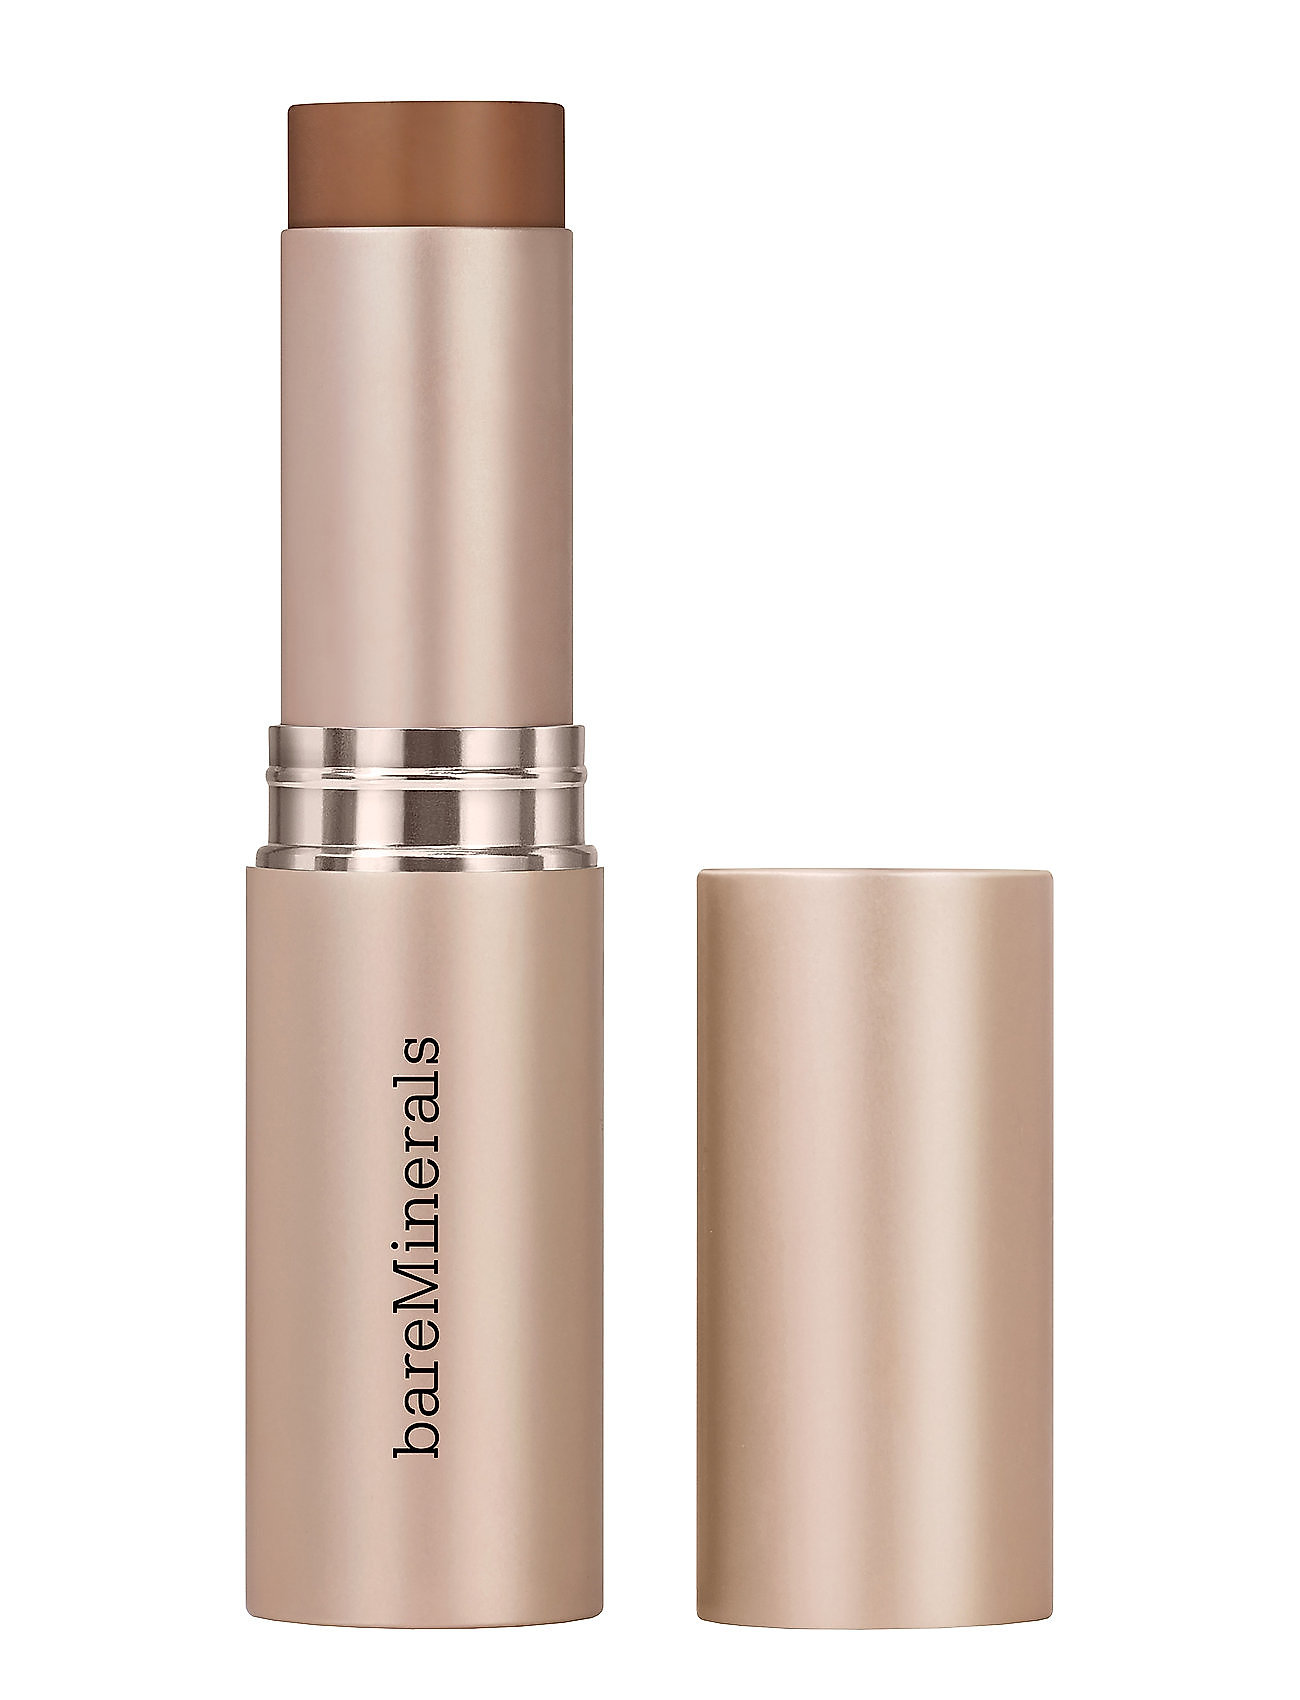 Image of Complexion Rescue Hydrating Foundation Stick Spf 25 Foundation Makeup BareMinerals (3250586915)